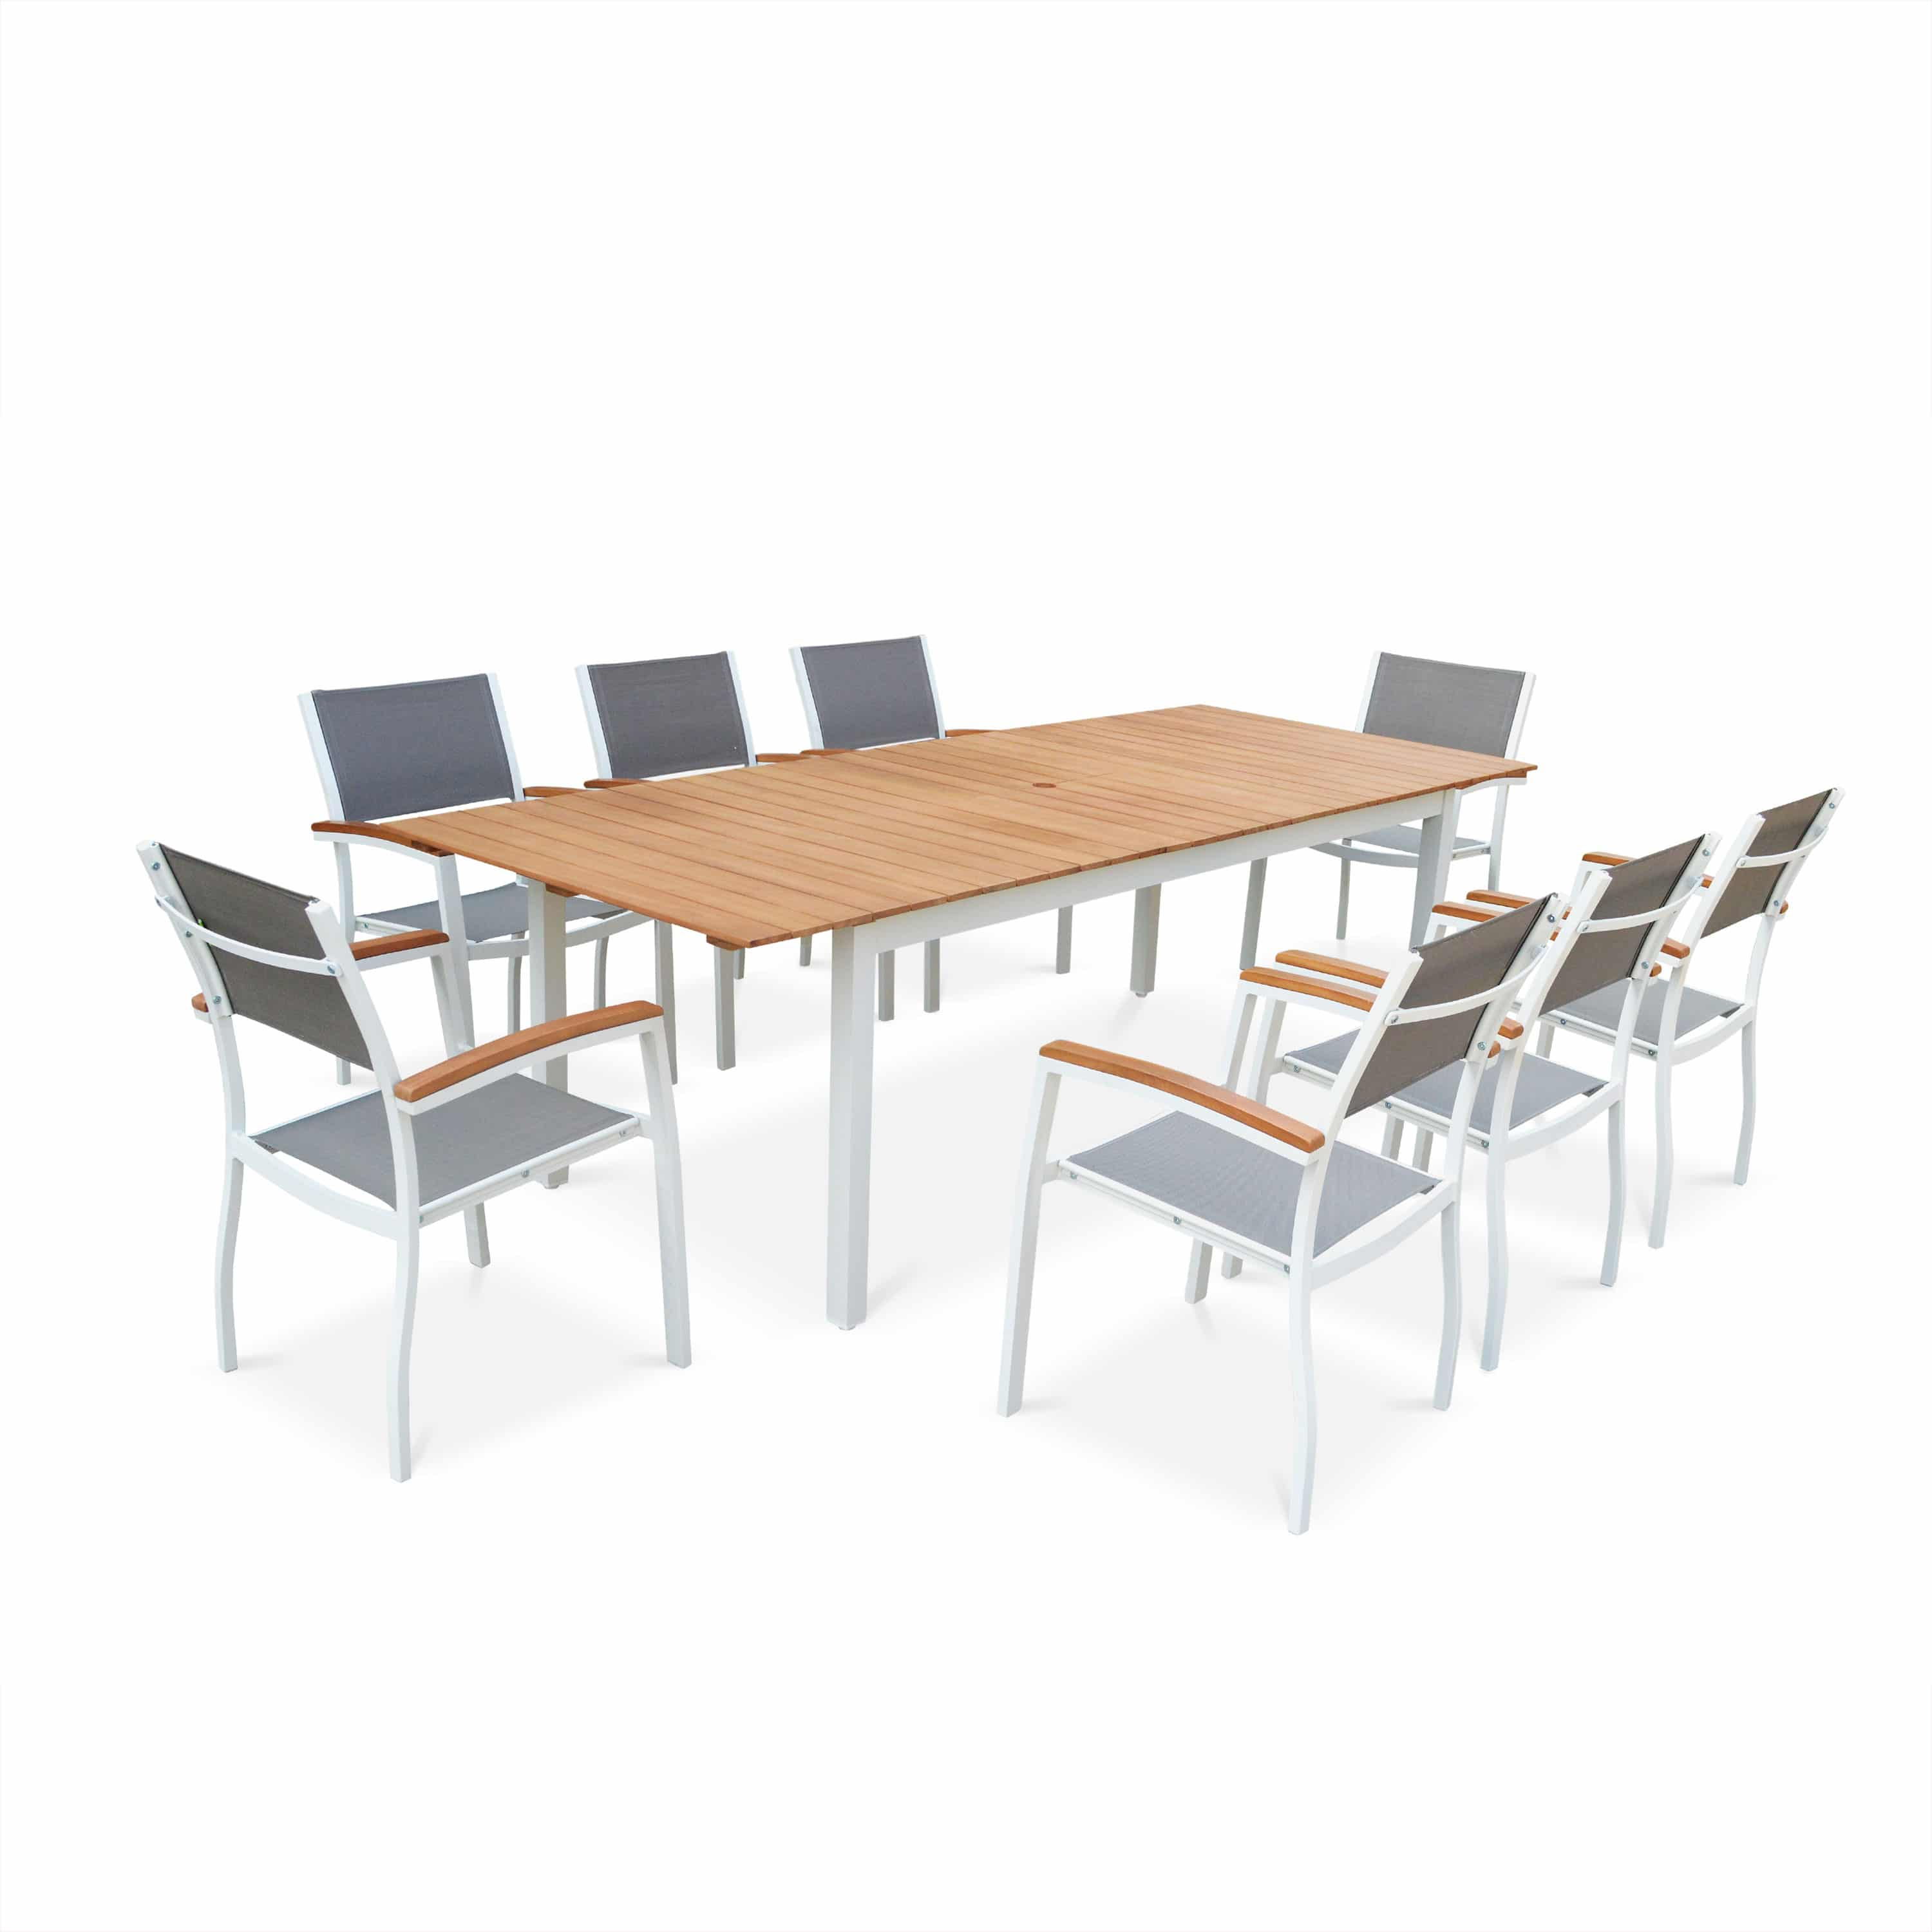 Sevilla 8 Seater Dining Set Eucalyptus/White